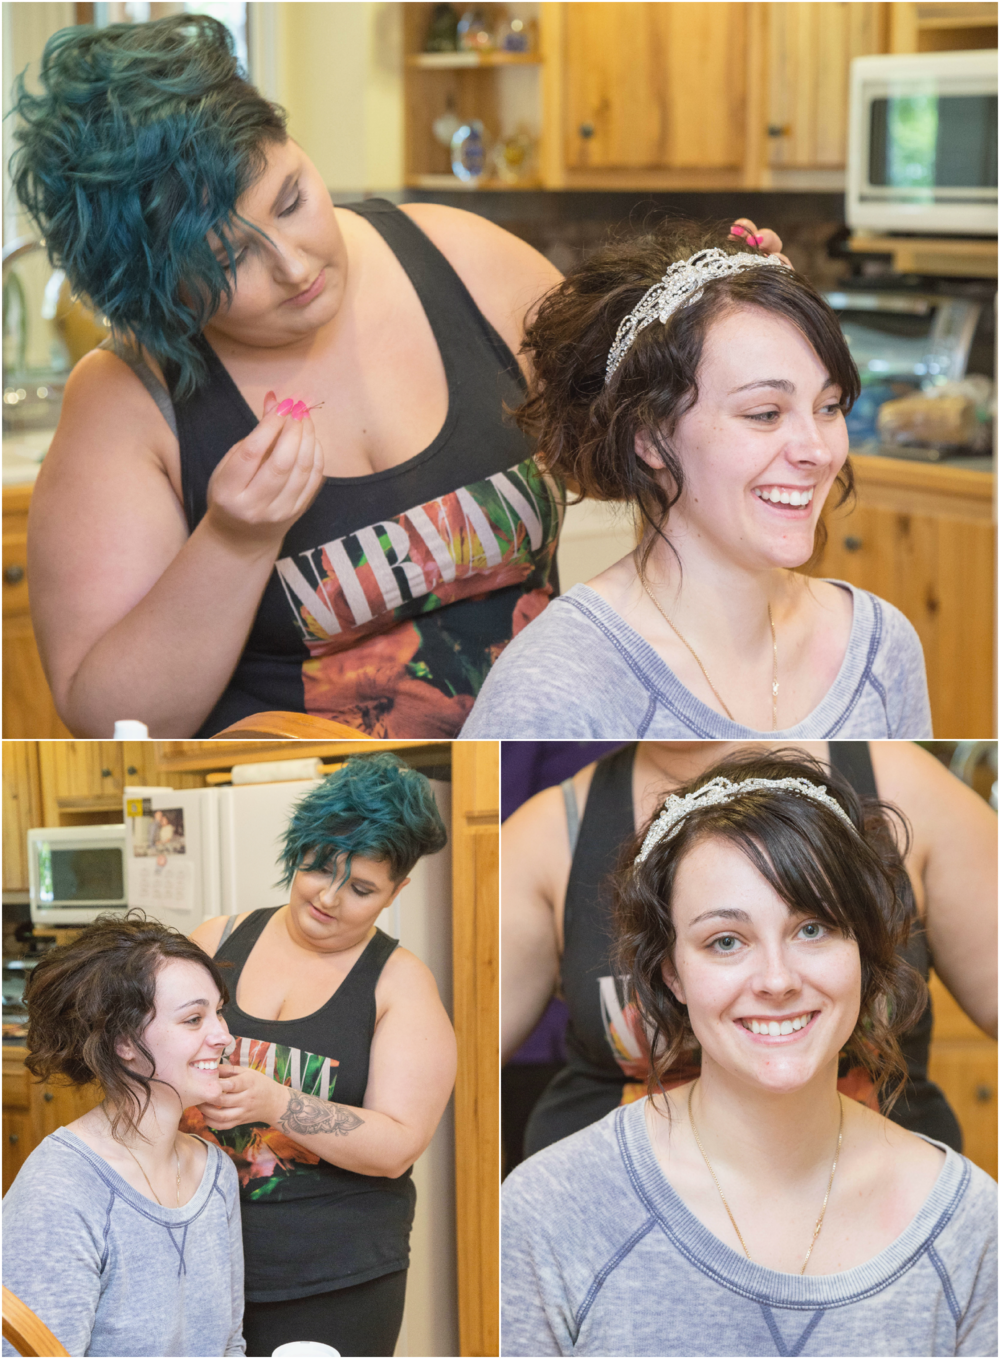 elkwater_wedding_photography_05.png